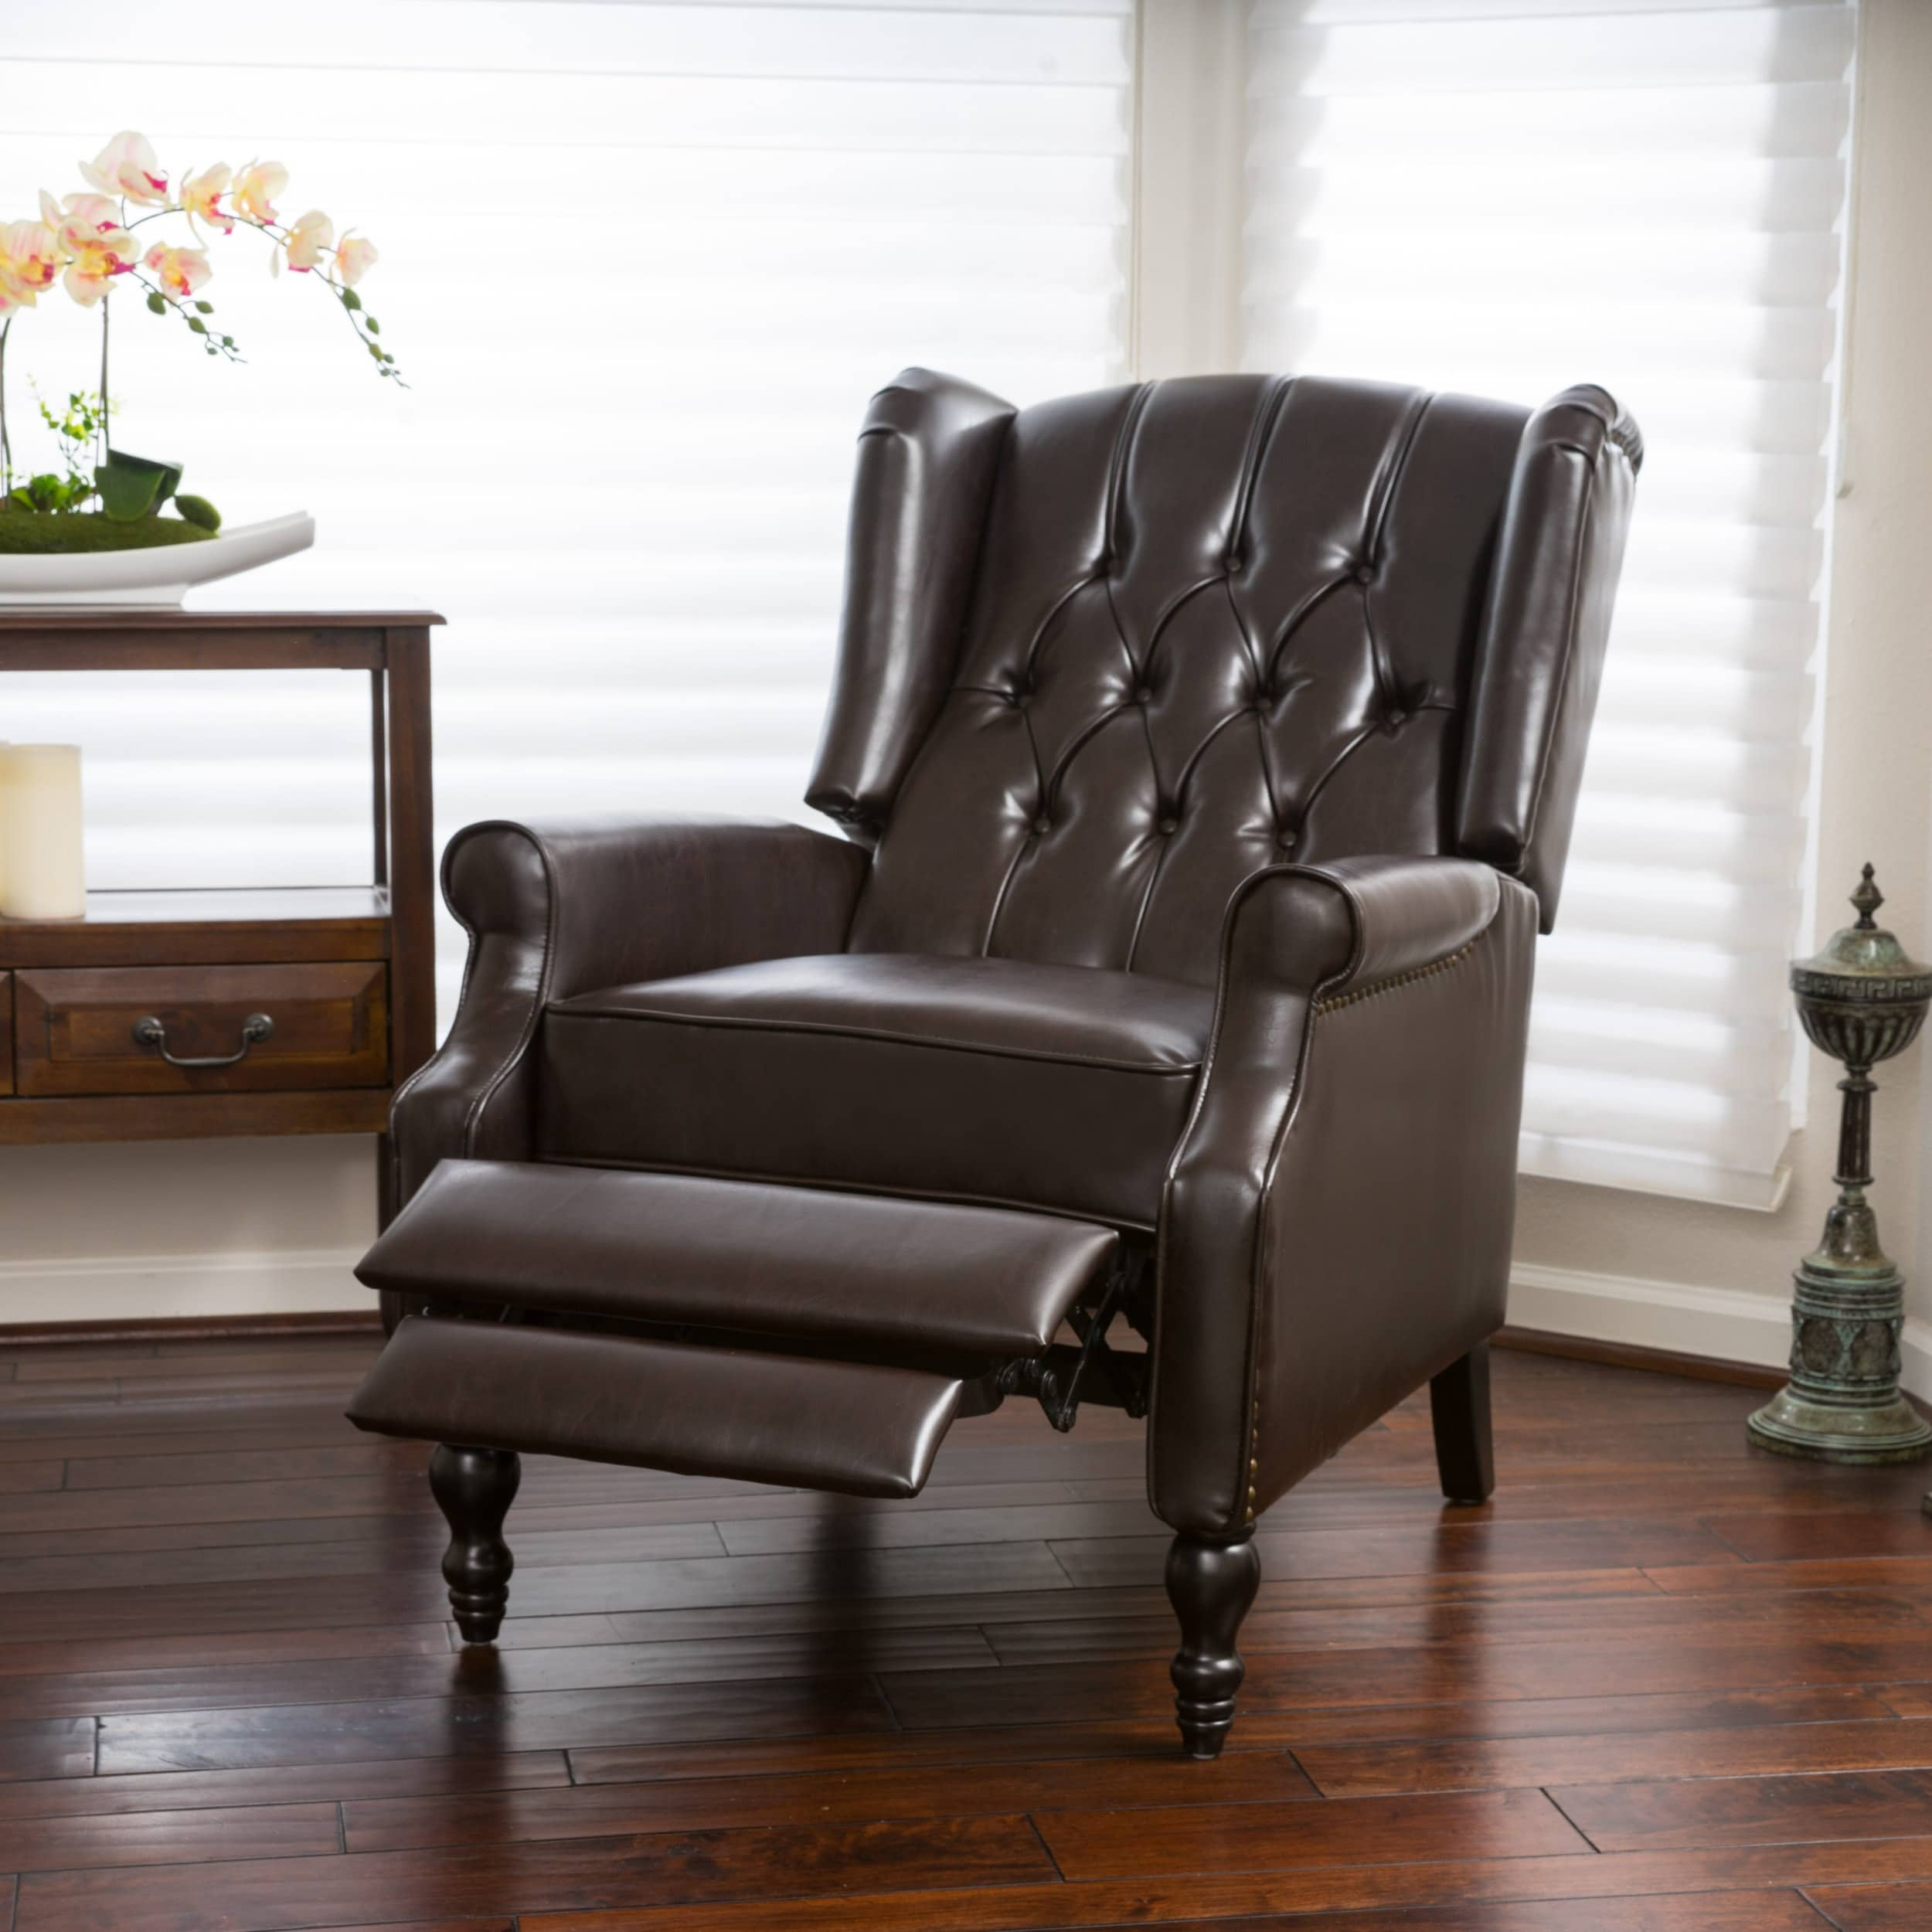 rocking neck bent leather sofas recliner high po armchairs gb brown products ikea chair for arm eggshell the support back black glose gives good ng en your